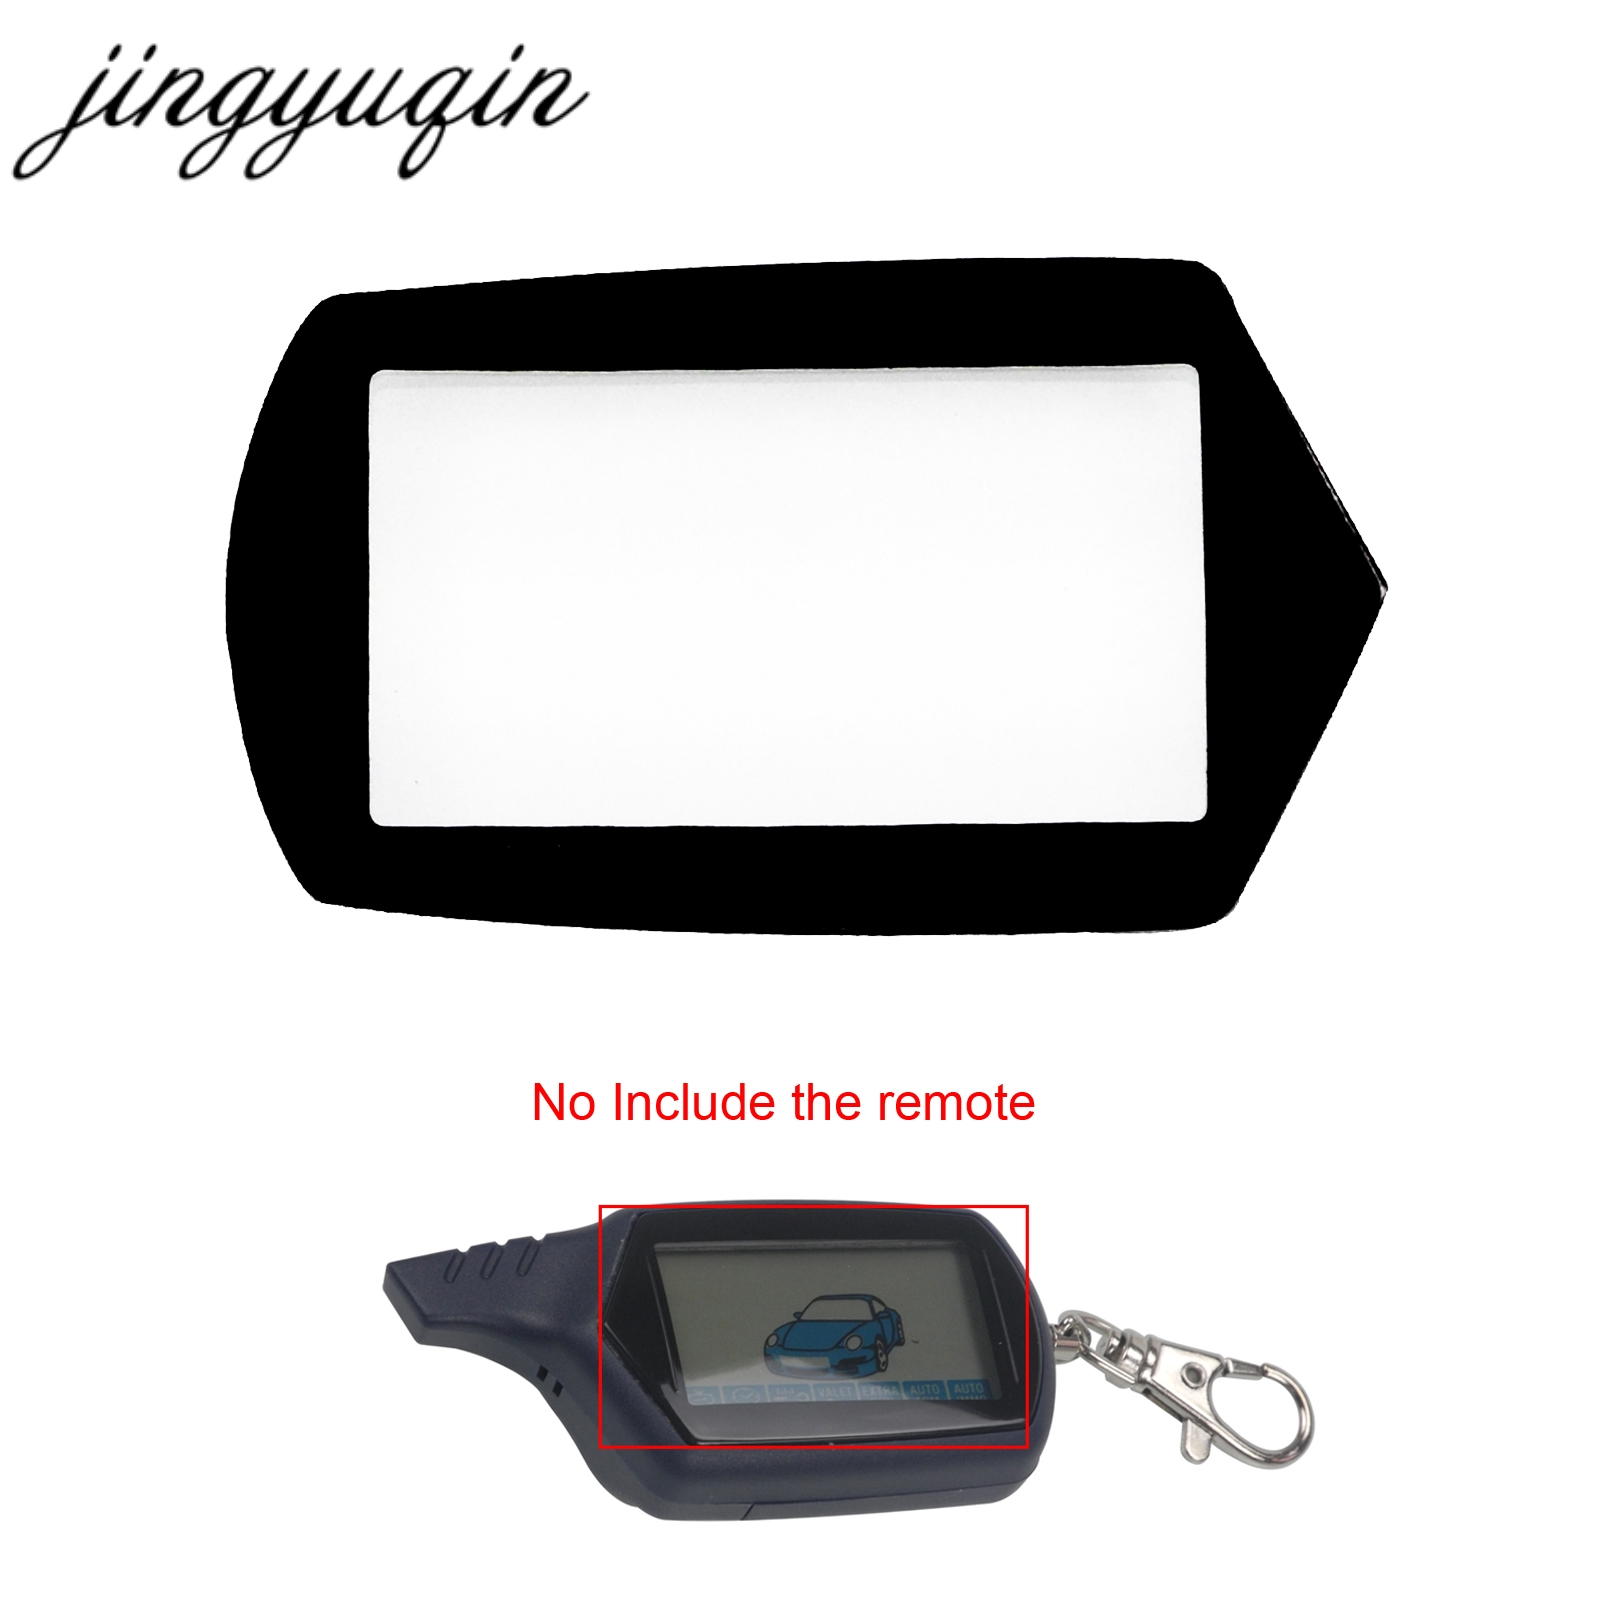 jingyuqin Keychain Glass for Starline B9/A91/B6/A61/B61/B91/V7 2-way LCD Remote Controller Glass+Double Sides Adhesive Tape цена